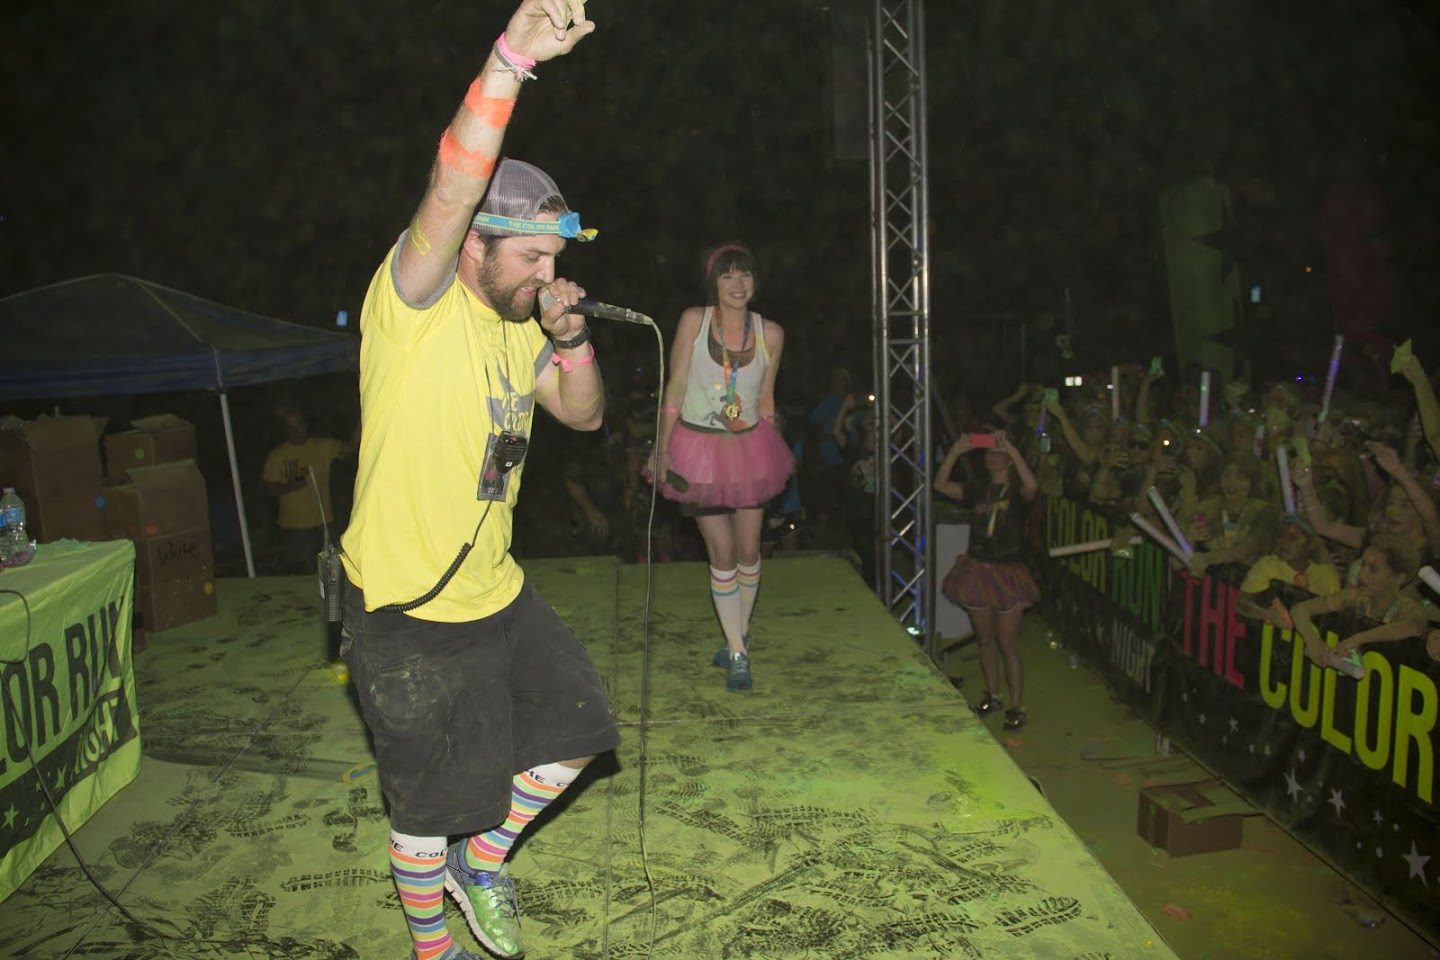 John Connors on stage at the Color Run